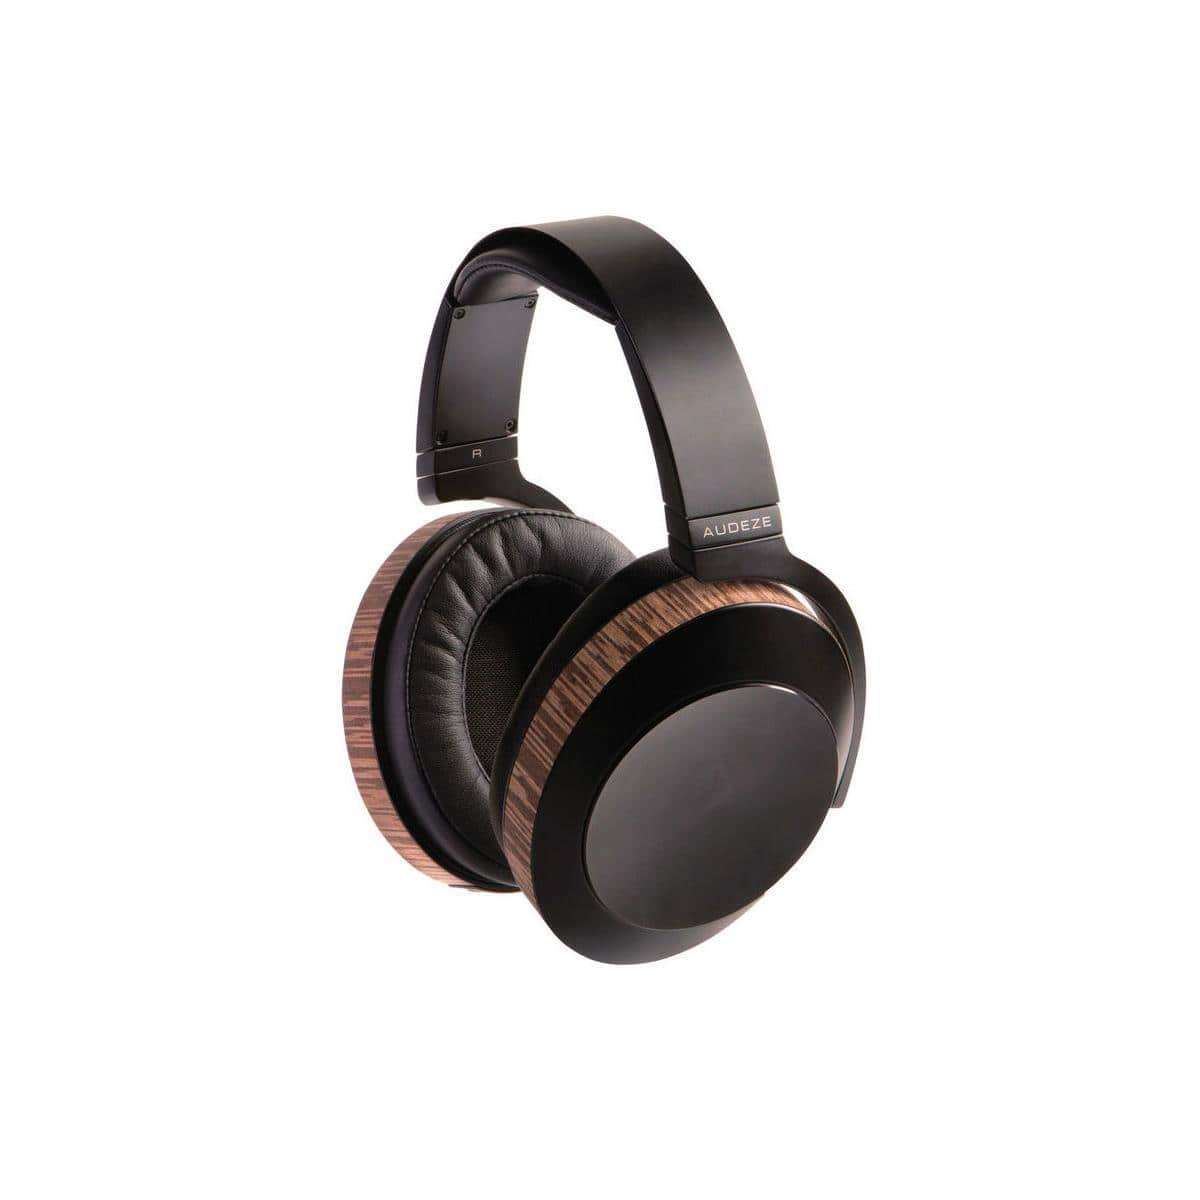 AUDEZE EL-8 Closed Back Planar Magnetic Headphones (refurb) $350 + free shipping